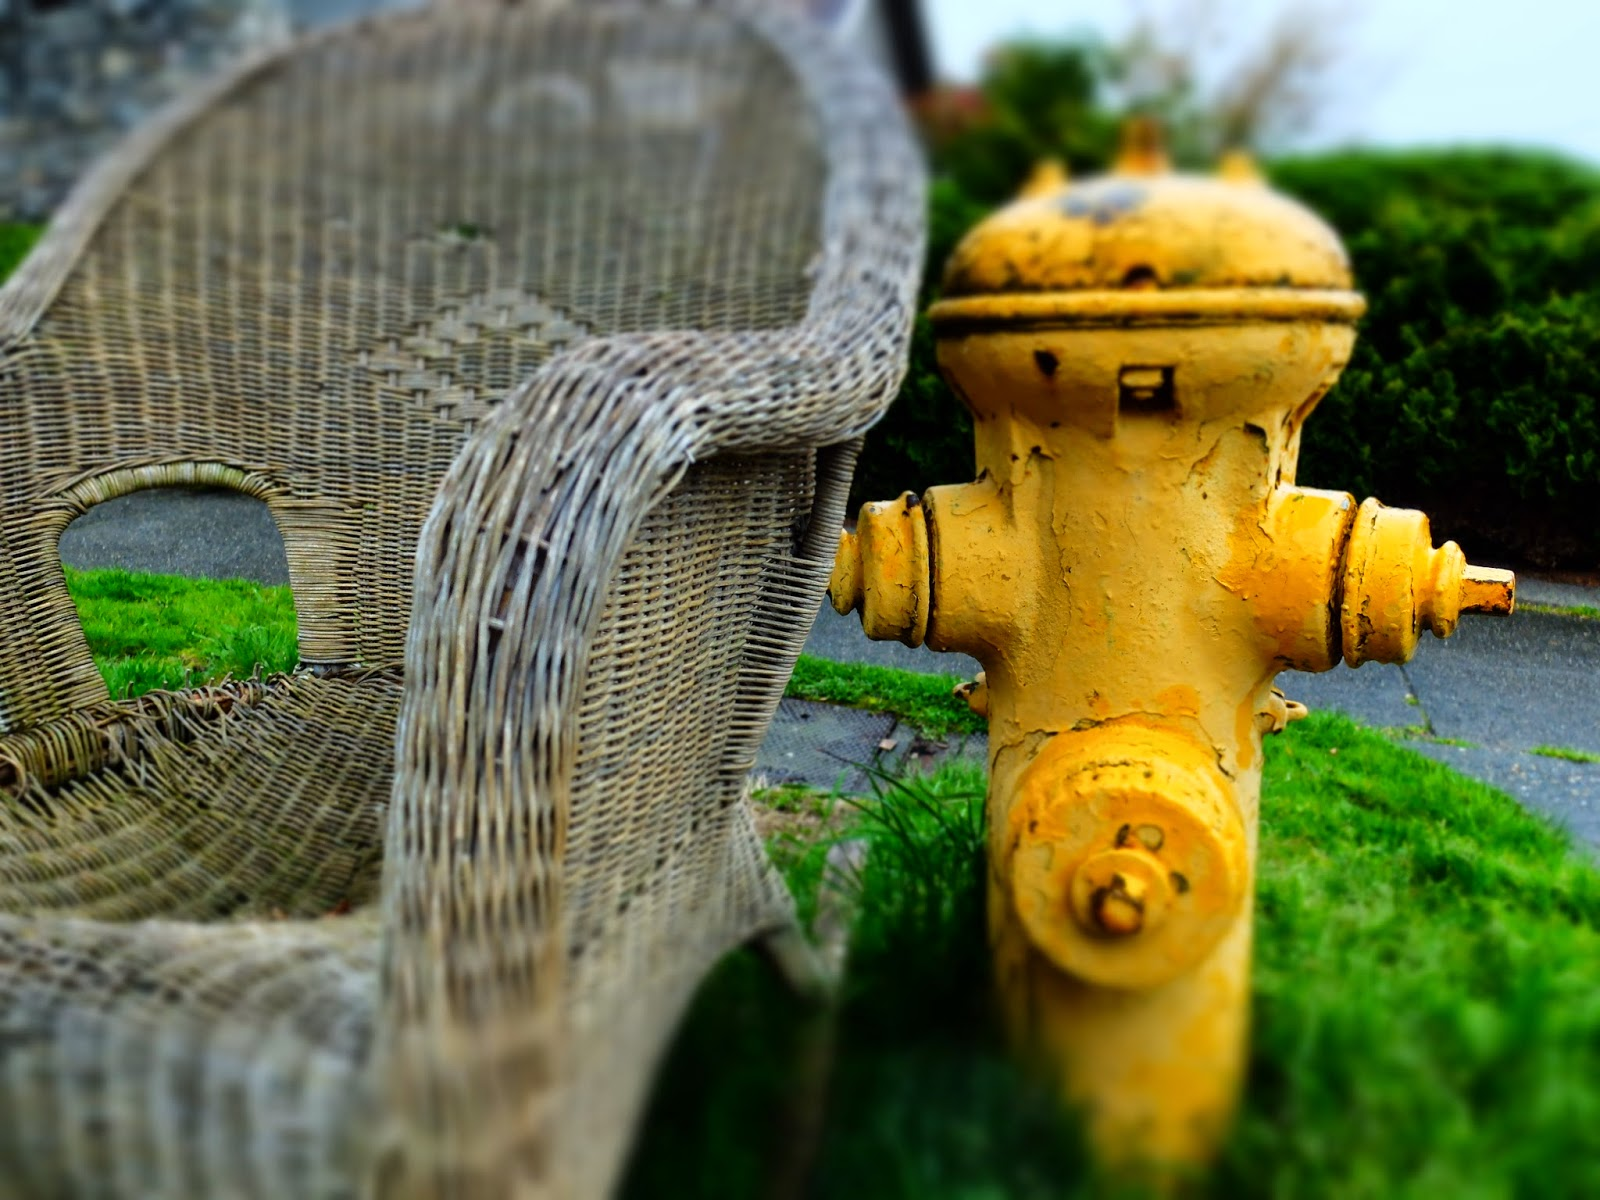 Wicker Rocker - Yellow Fire Hydrant